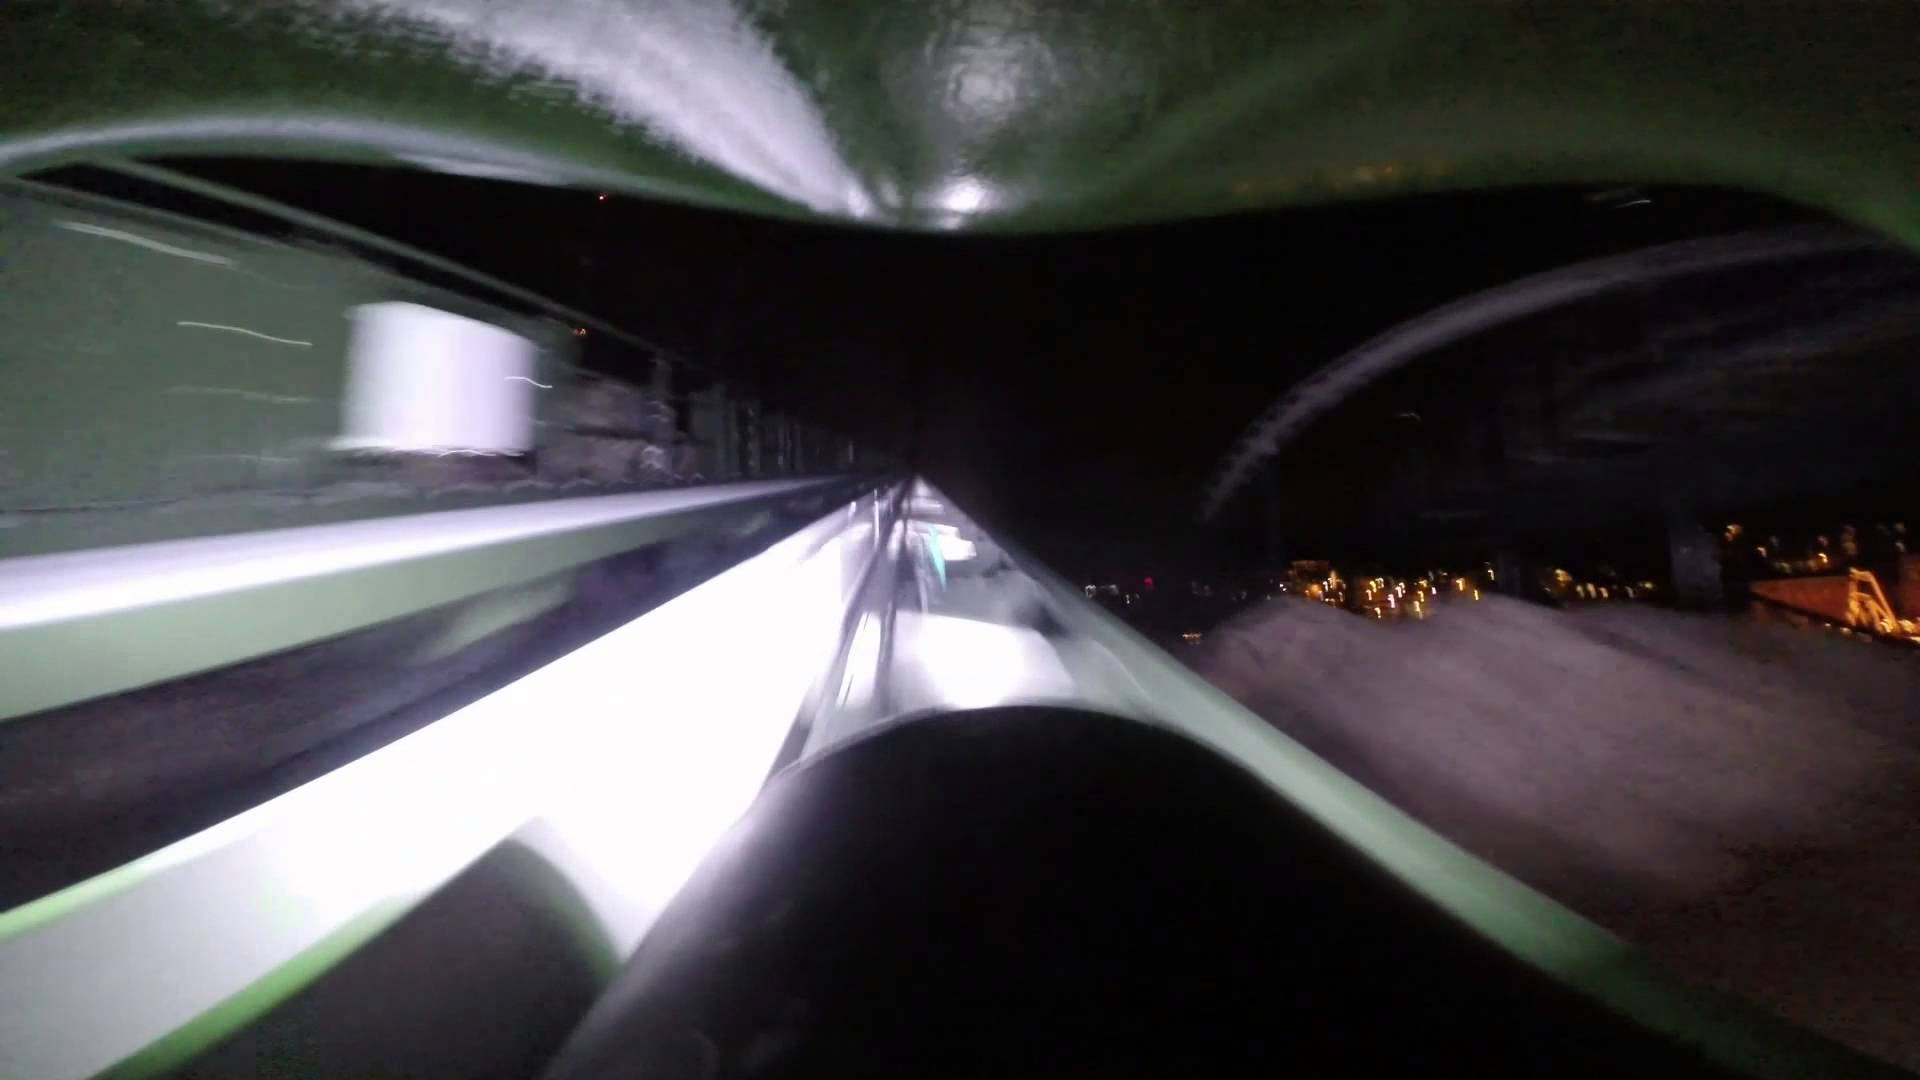 This is How a Ride in Helix Looks as Night